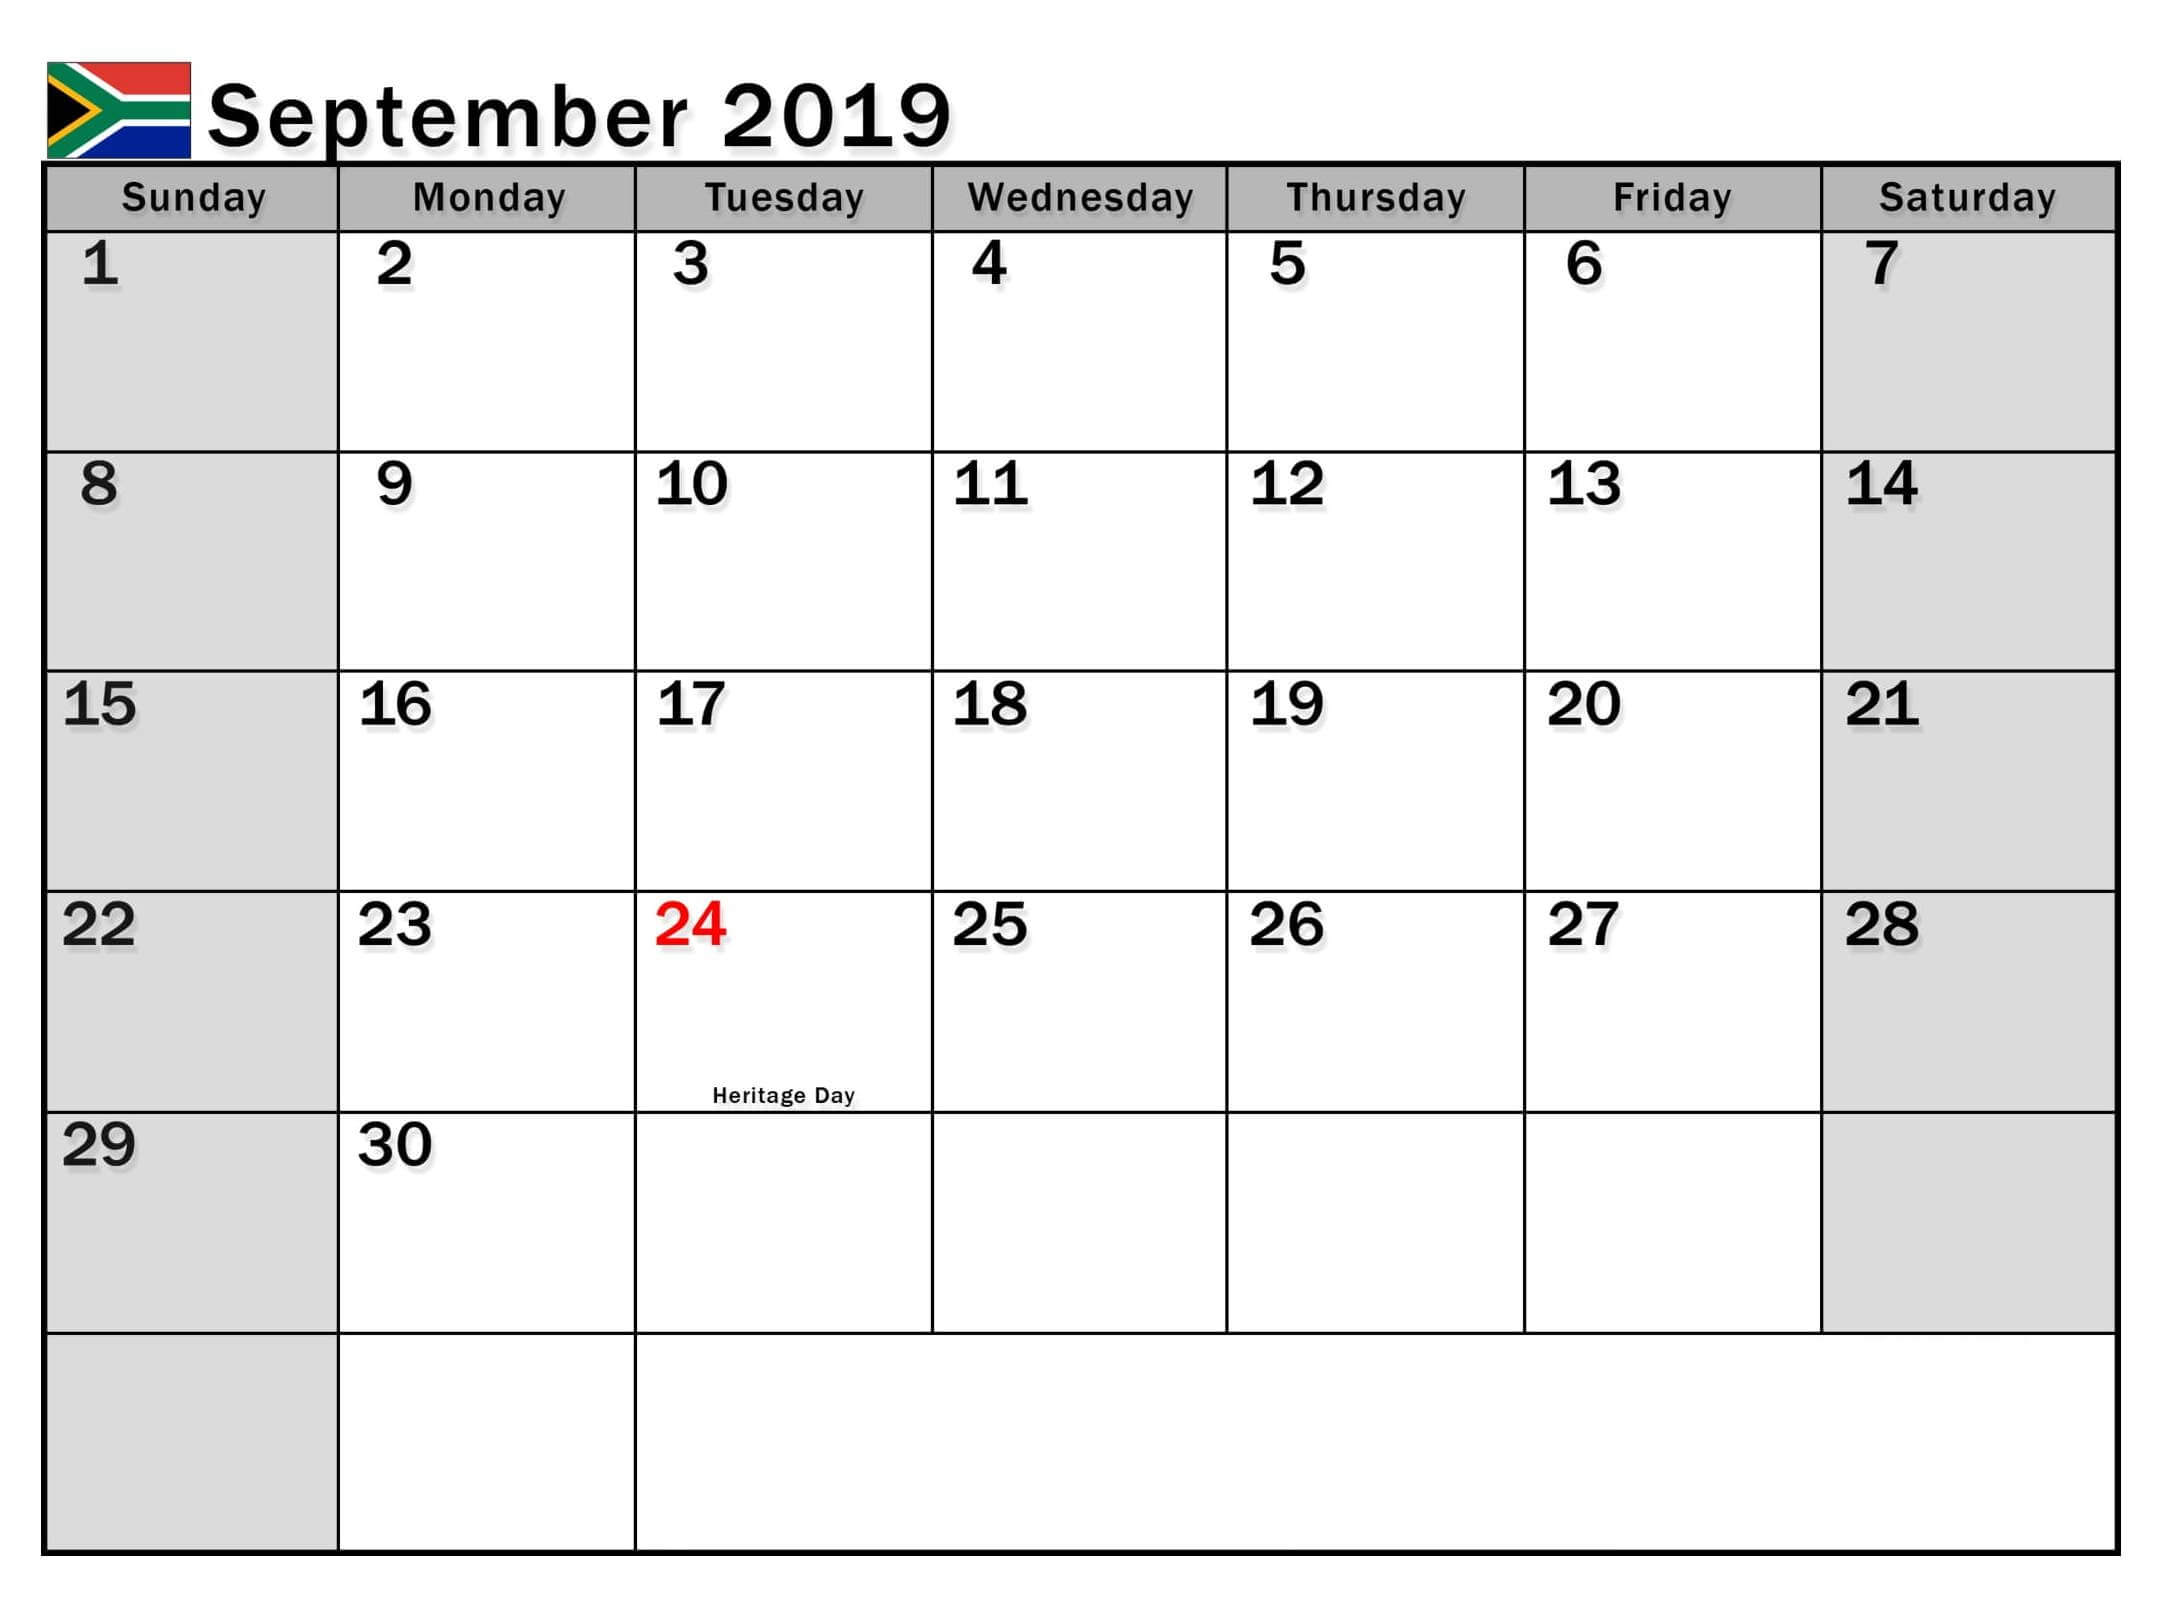 September 2019 Calendar with Holidays South Africa